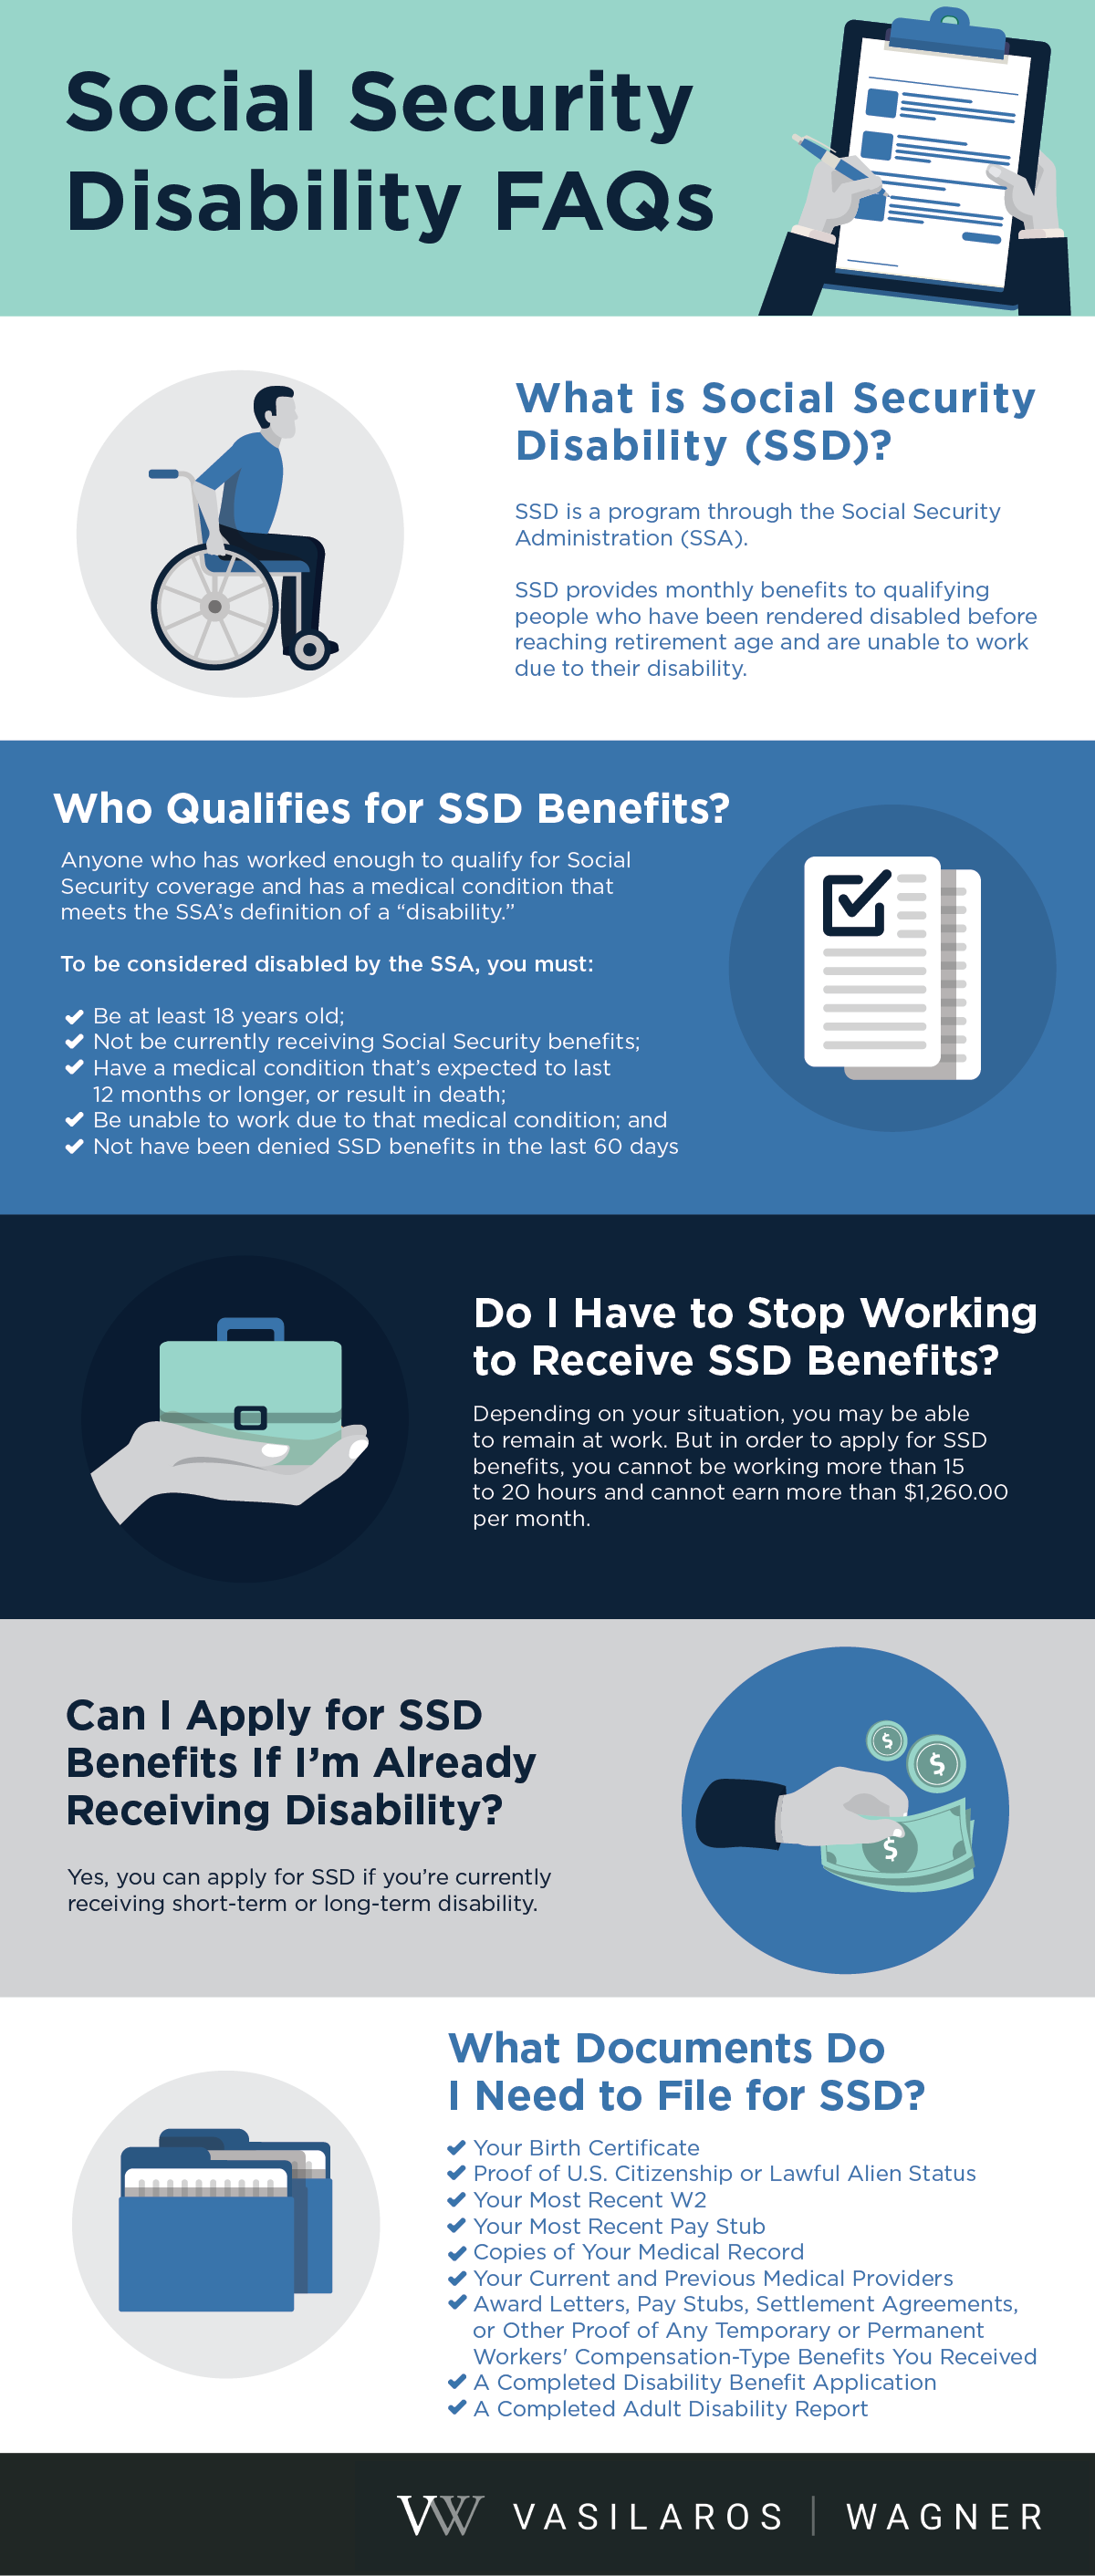 social security disability faqs infographic